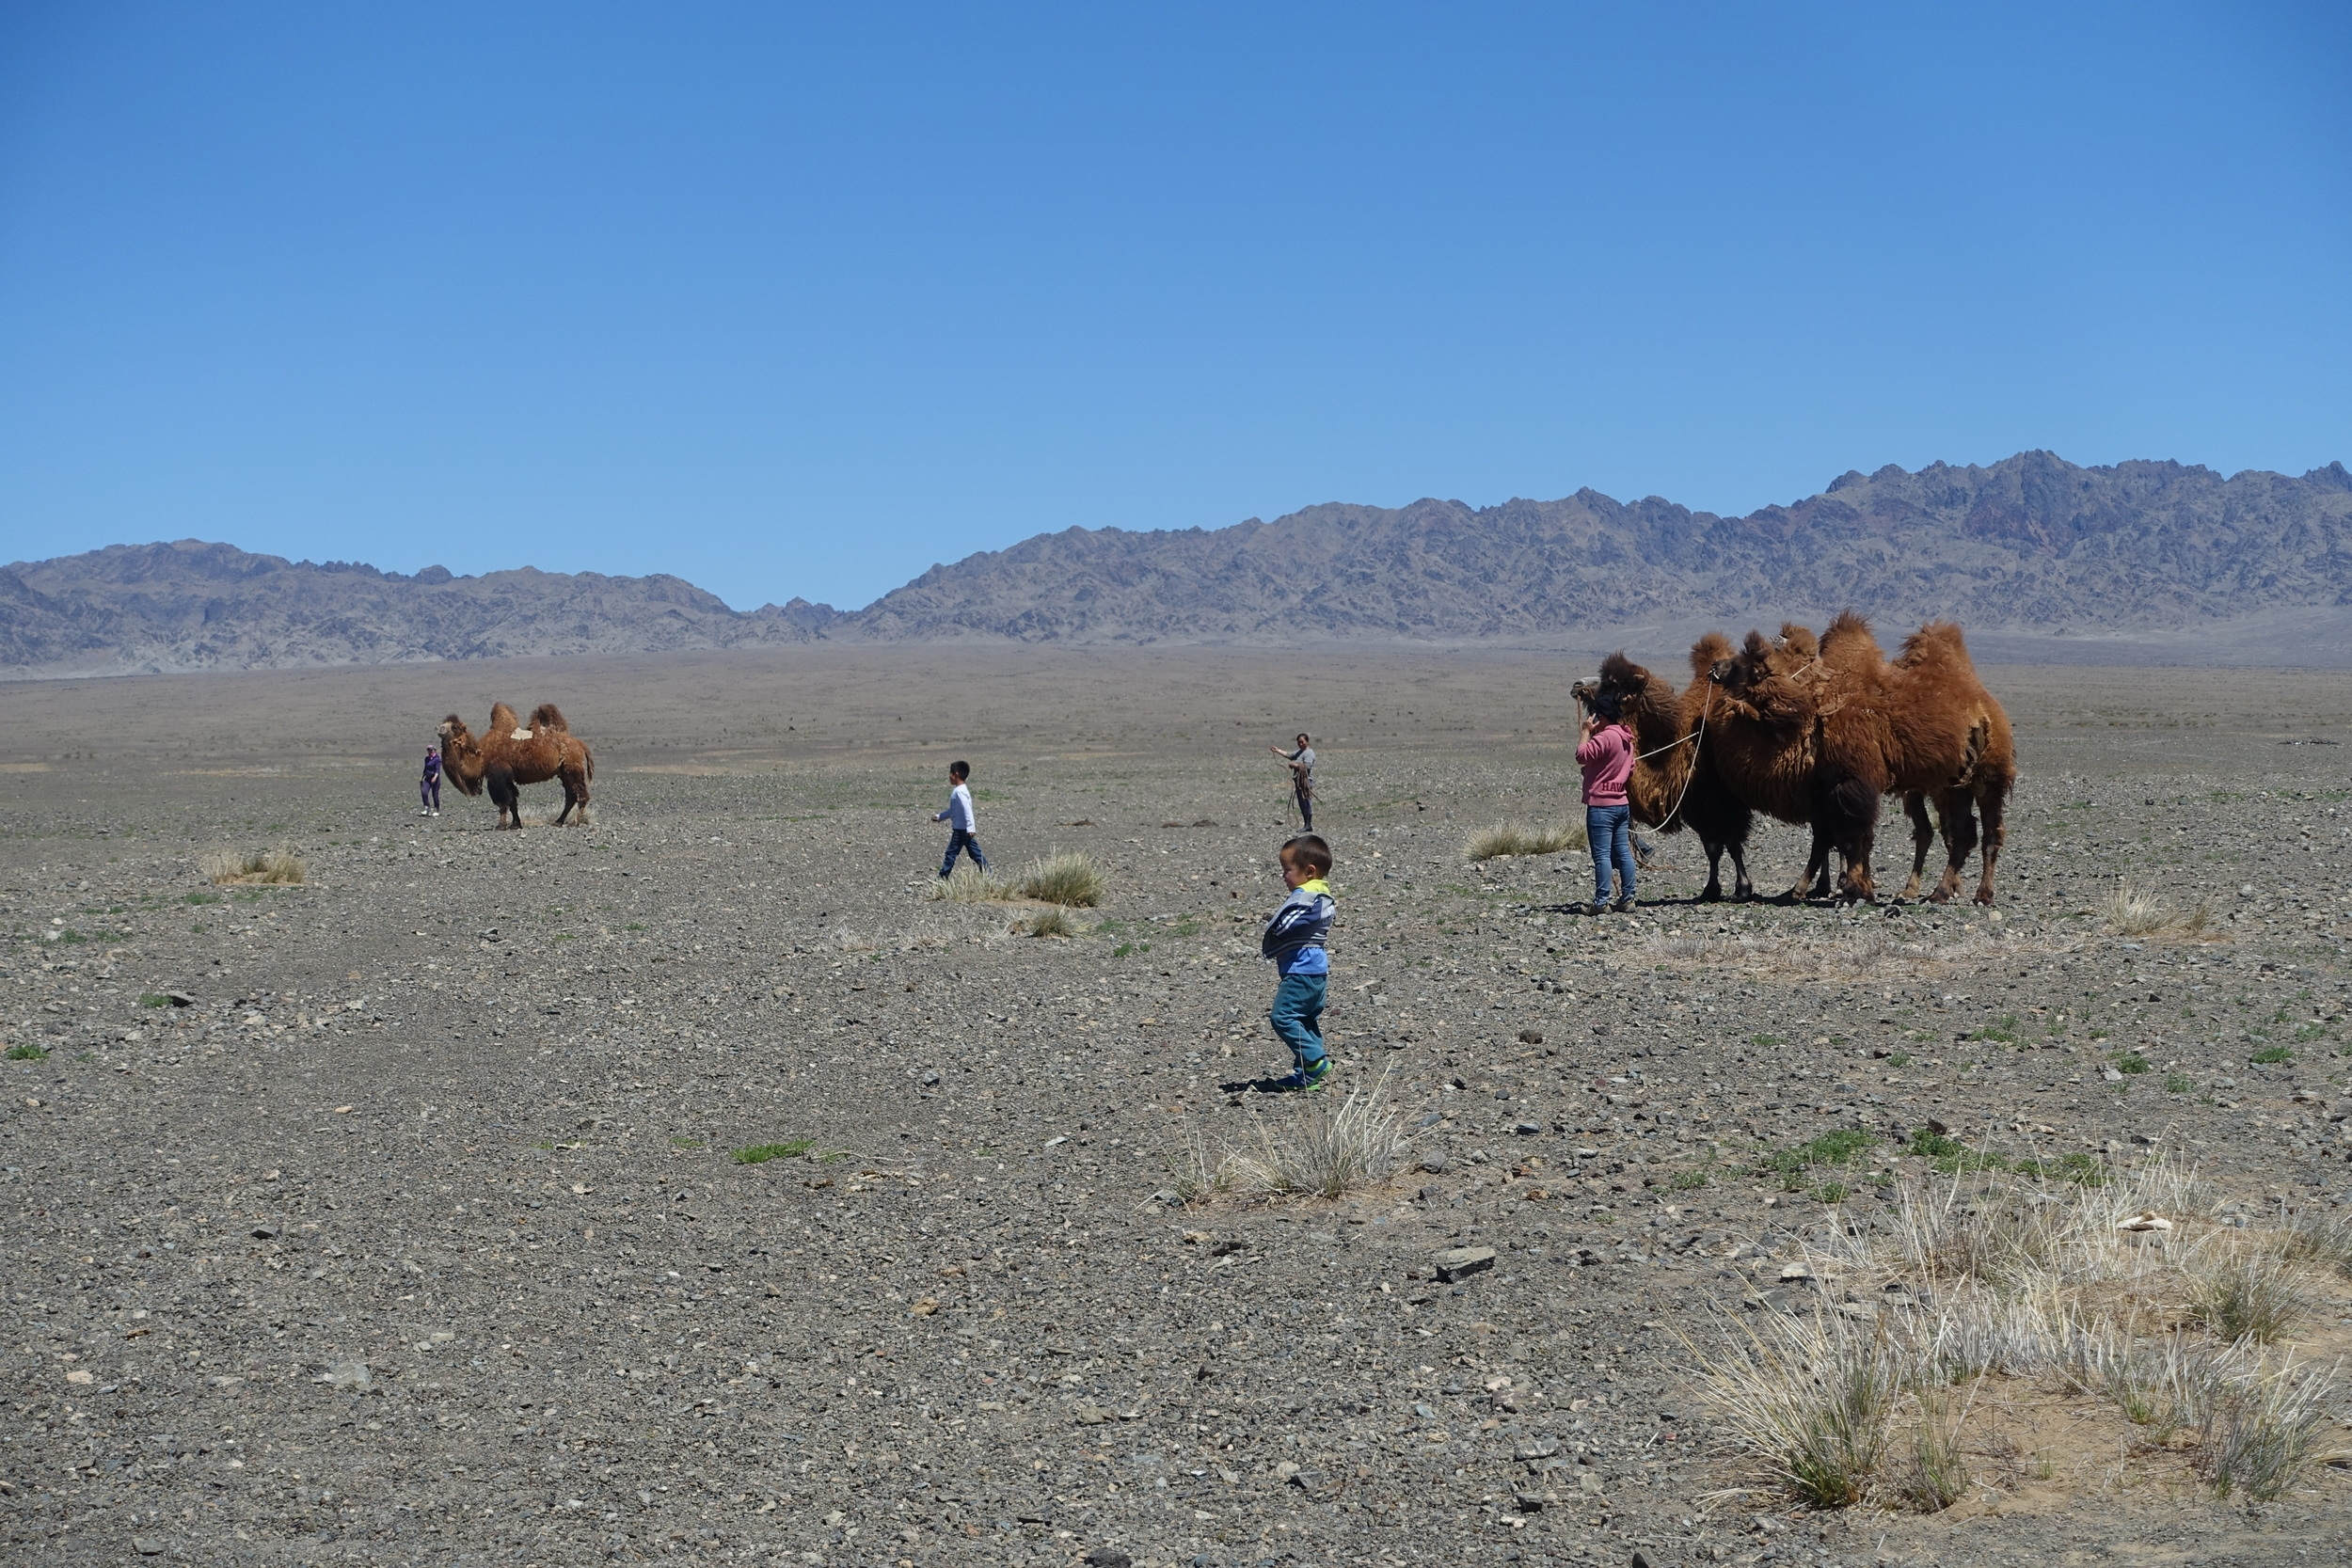 In the Gobi region, camels are used for transporting goods, but also for milk, meat and wool production. Families breeding camels also offer tourists to ride camels or participate in the shearing of wool.